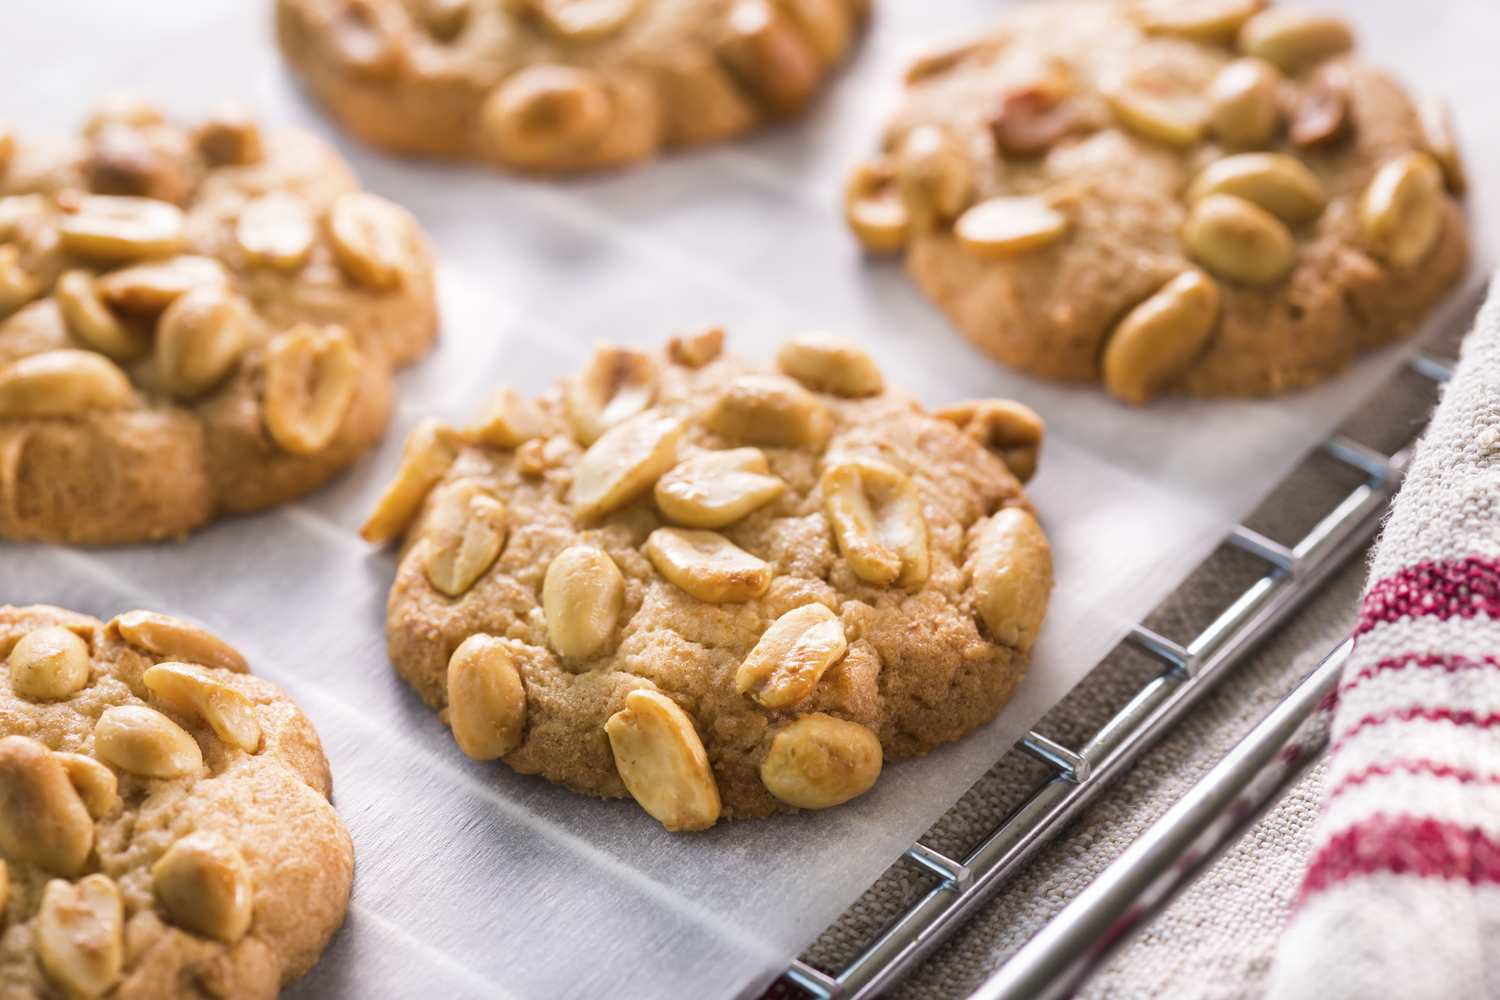 ... : 70% more protein and 70% less carbs, than regular peanut cookies